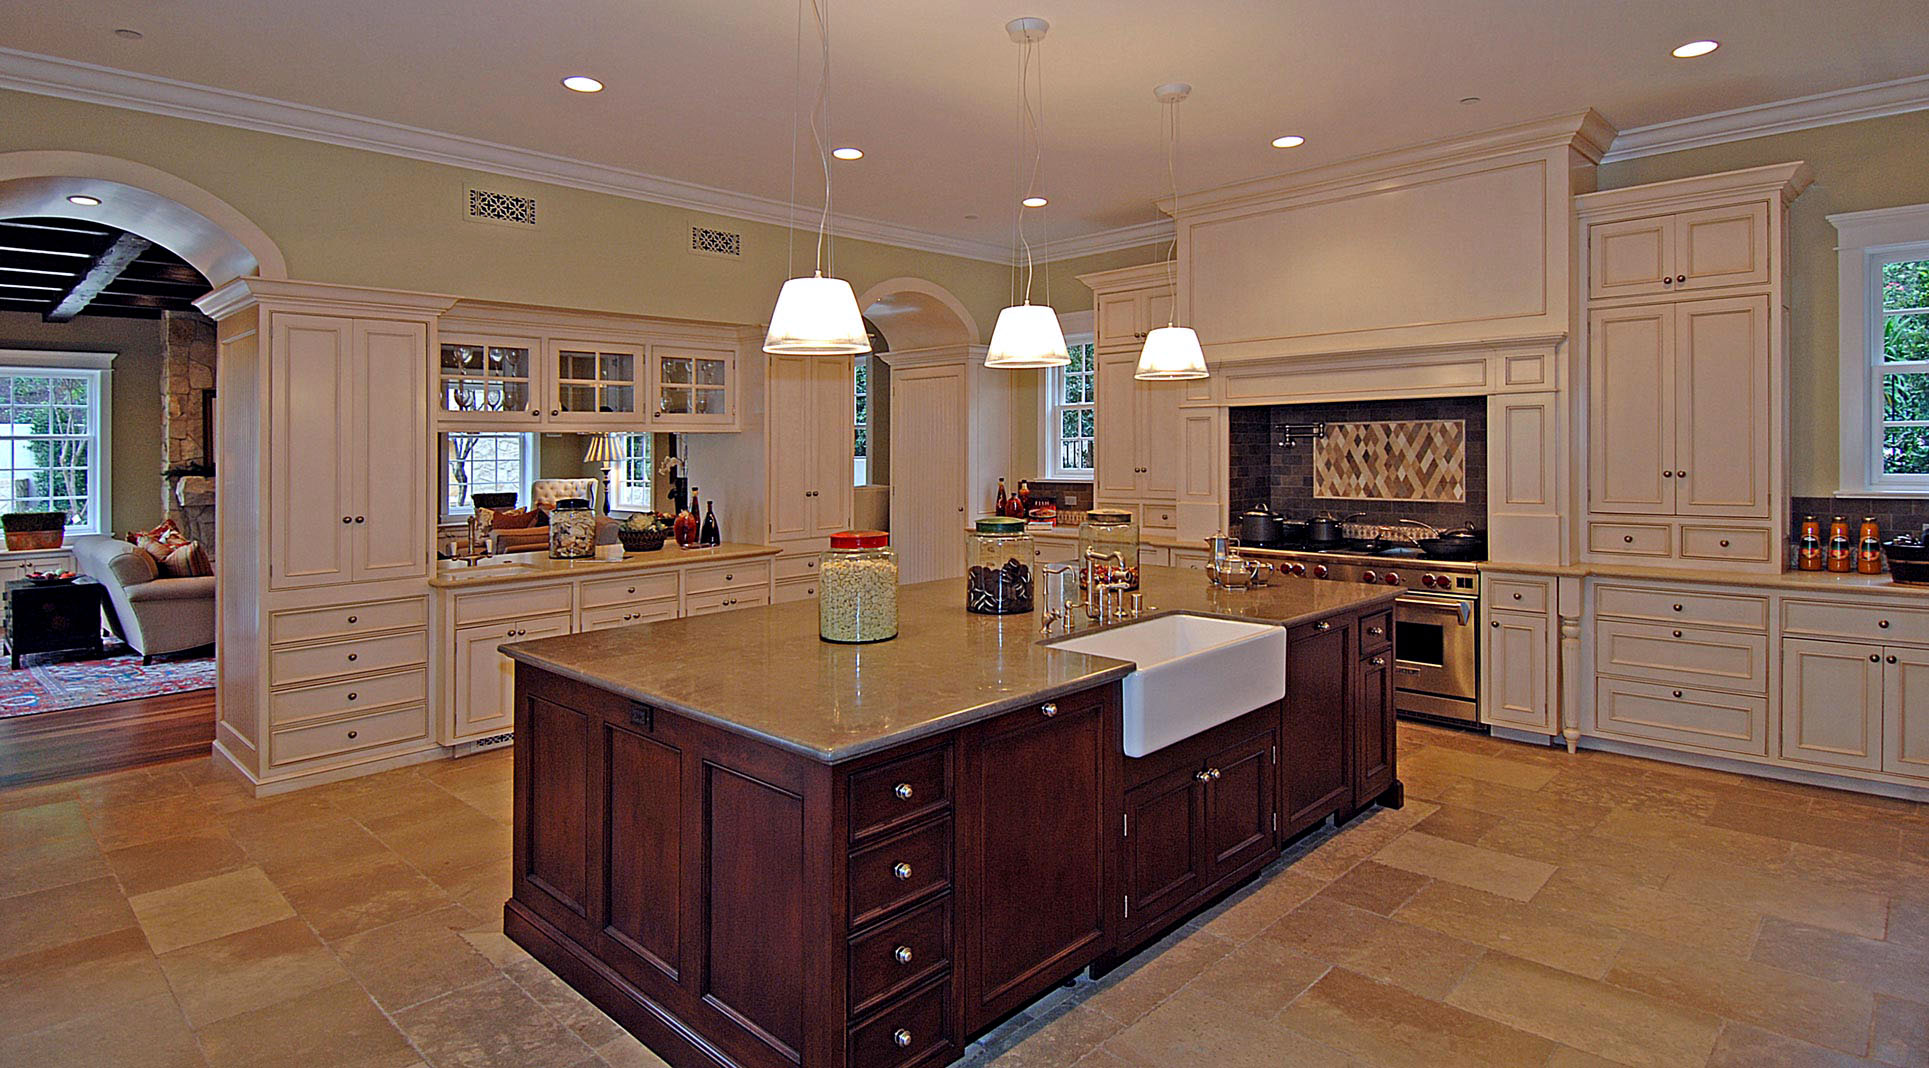 Traditional-Country-Kitchen-Island-Premier-General-Contractors.jpg